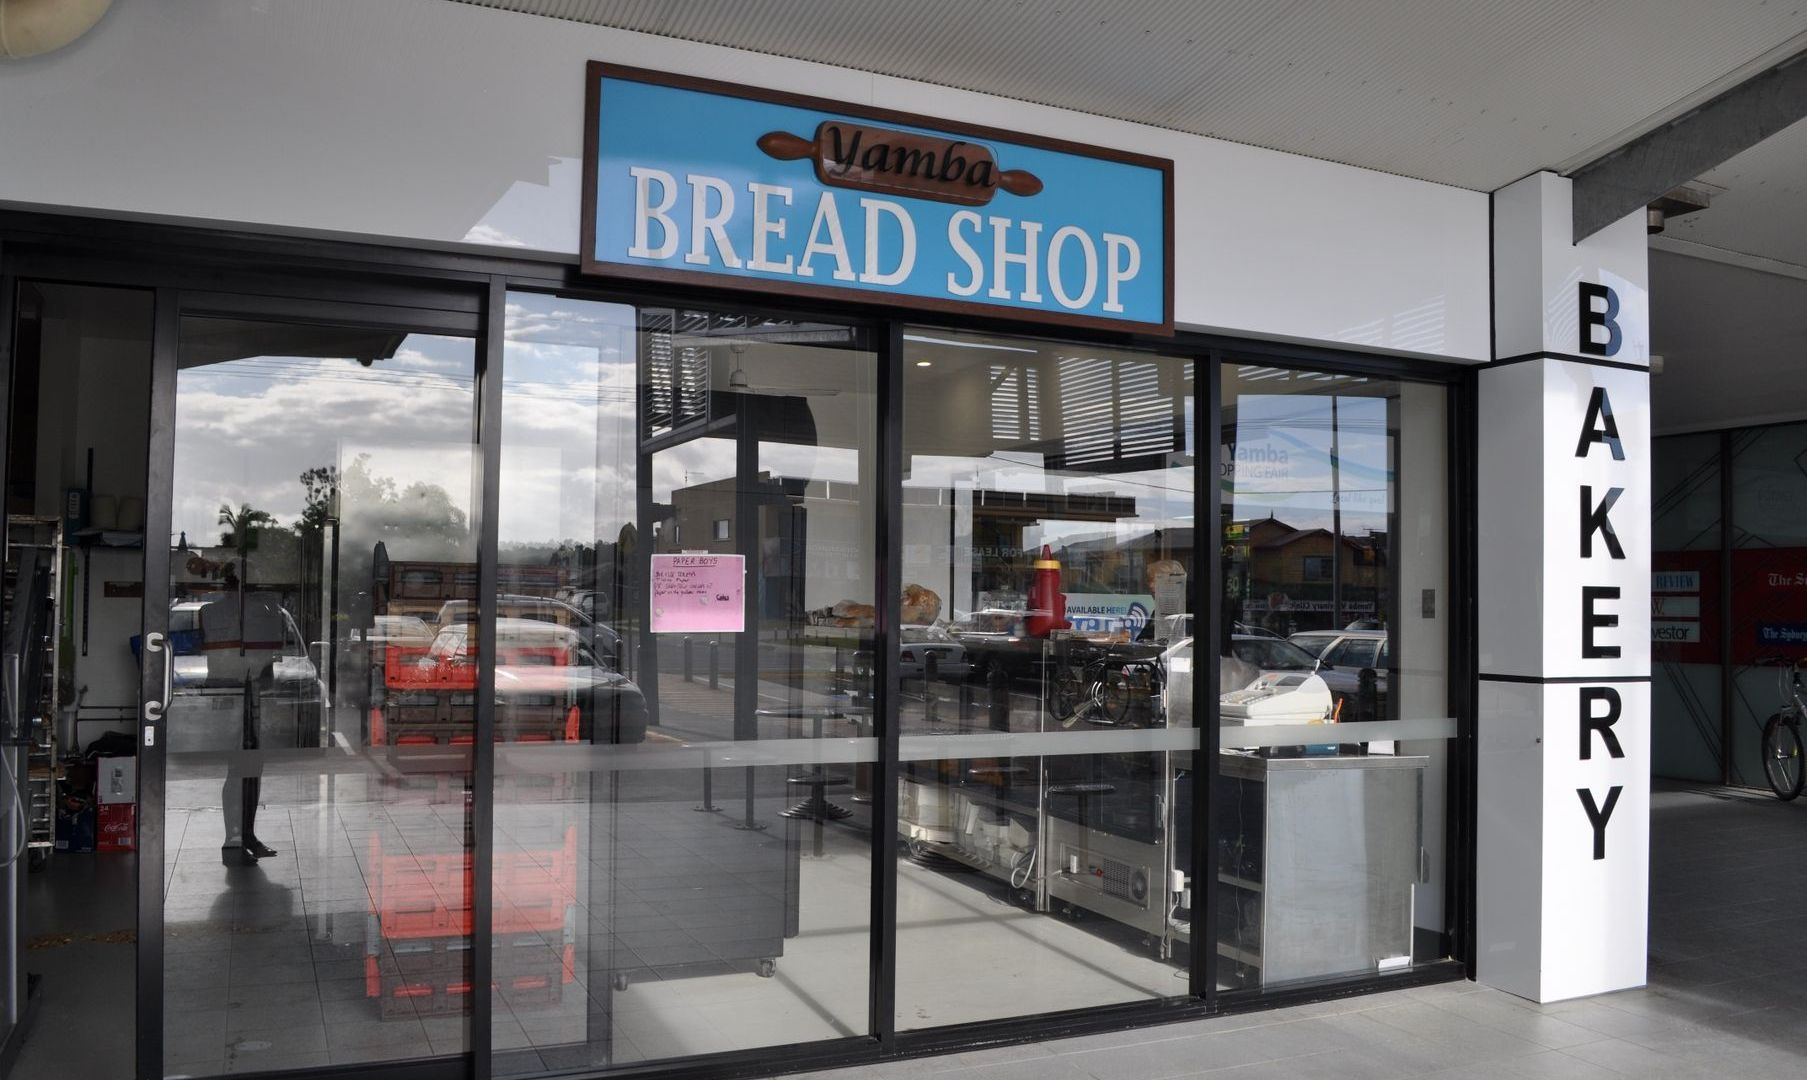 Yamba Bread Shop Yamba Shopping Fair, Yamba NSW 2464, Image 1